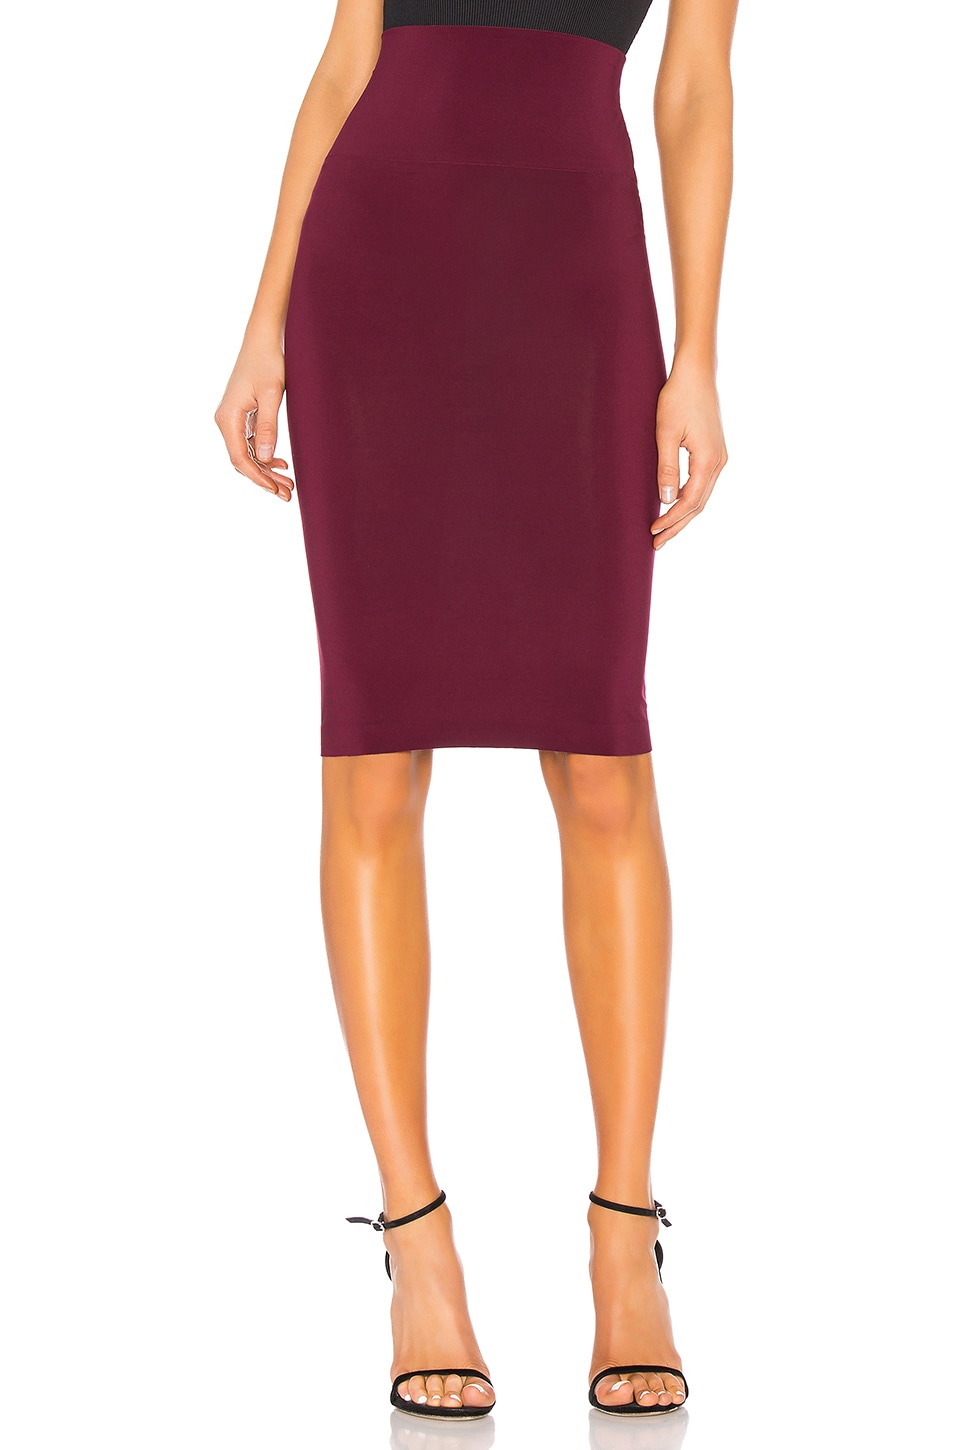 Norma Kamali Tube Skirt in Plum